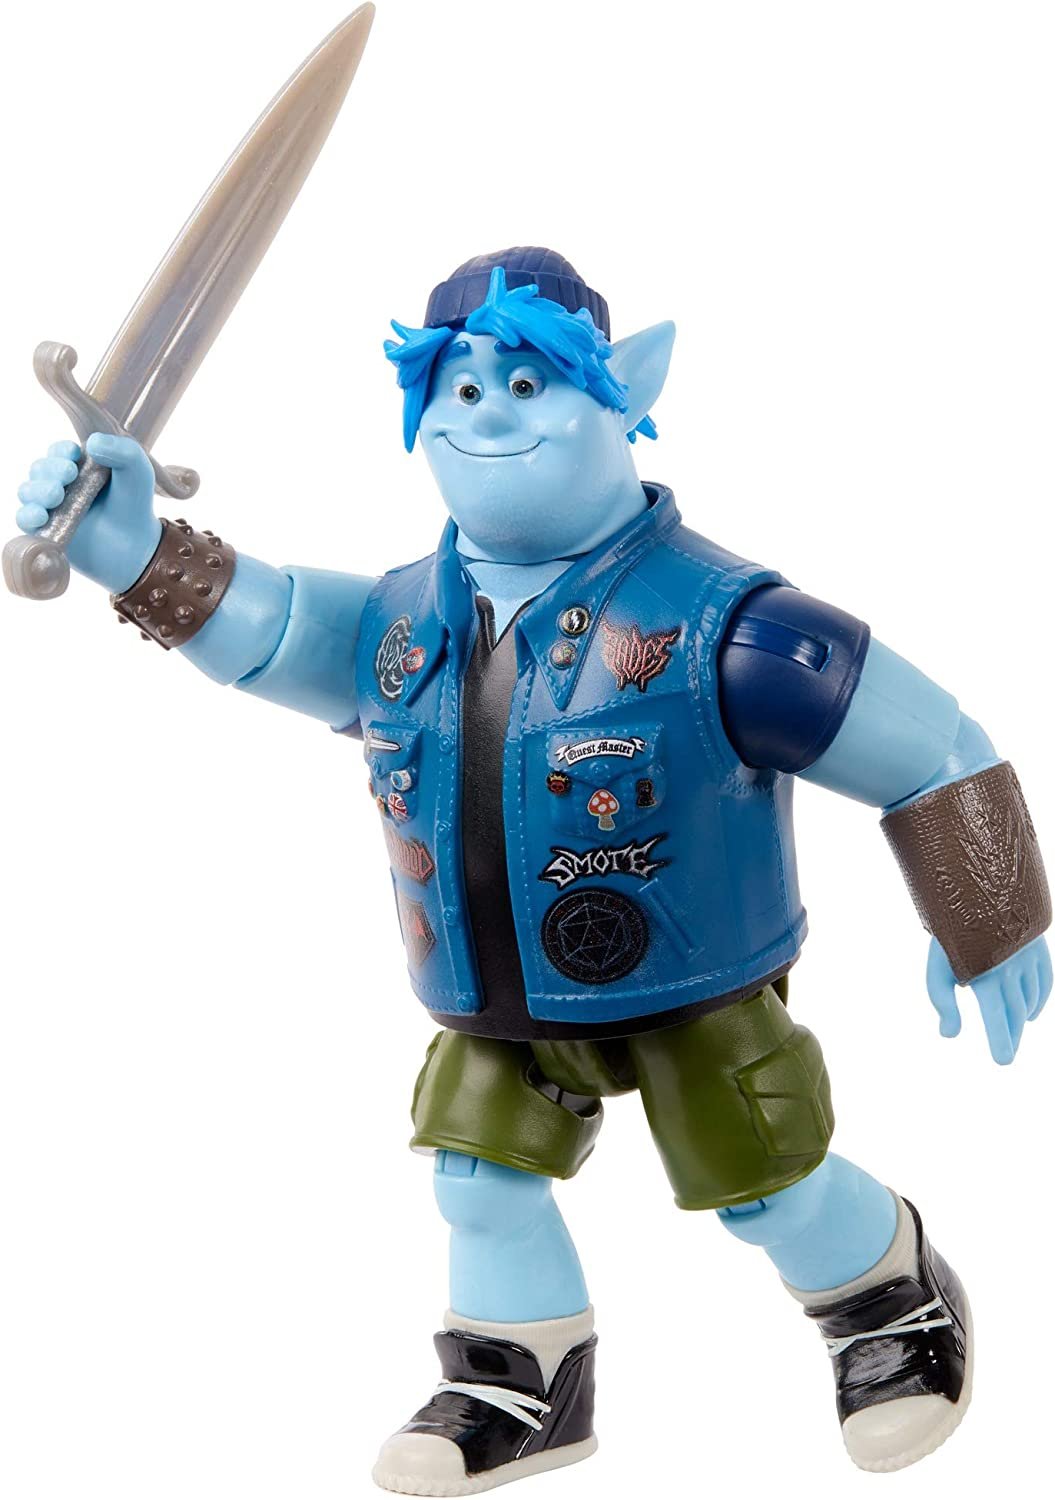 Disney Pixar Onward: Core Figure Barley Character Action Figure Realistic Movie Toy Brother Doll for Storytelling, Display and Collecting for Ages 3 and Up [Amazon Exclusive]